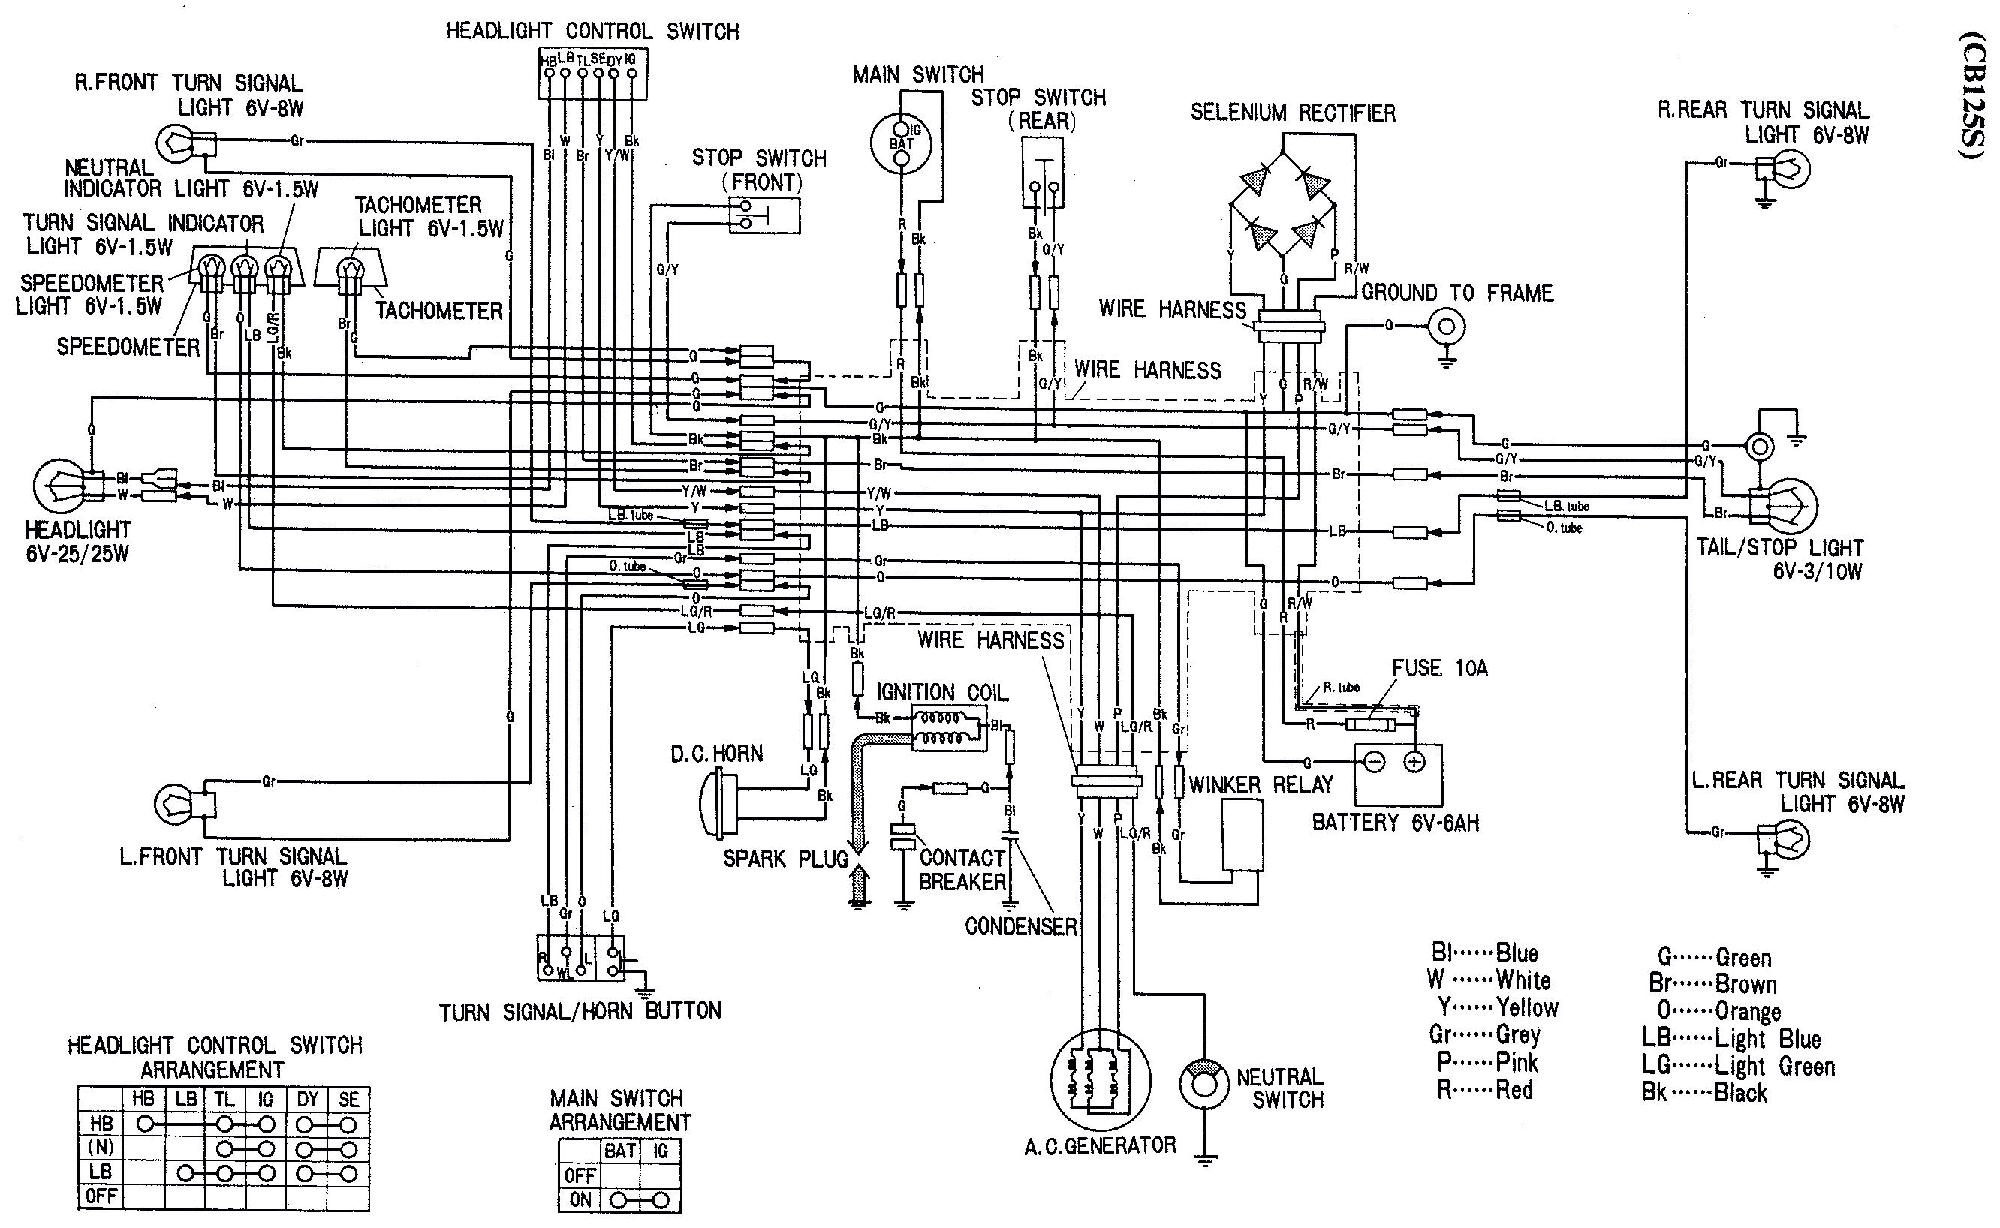 honda mt 125 wiring diagram